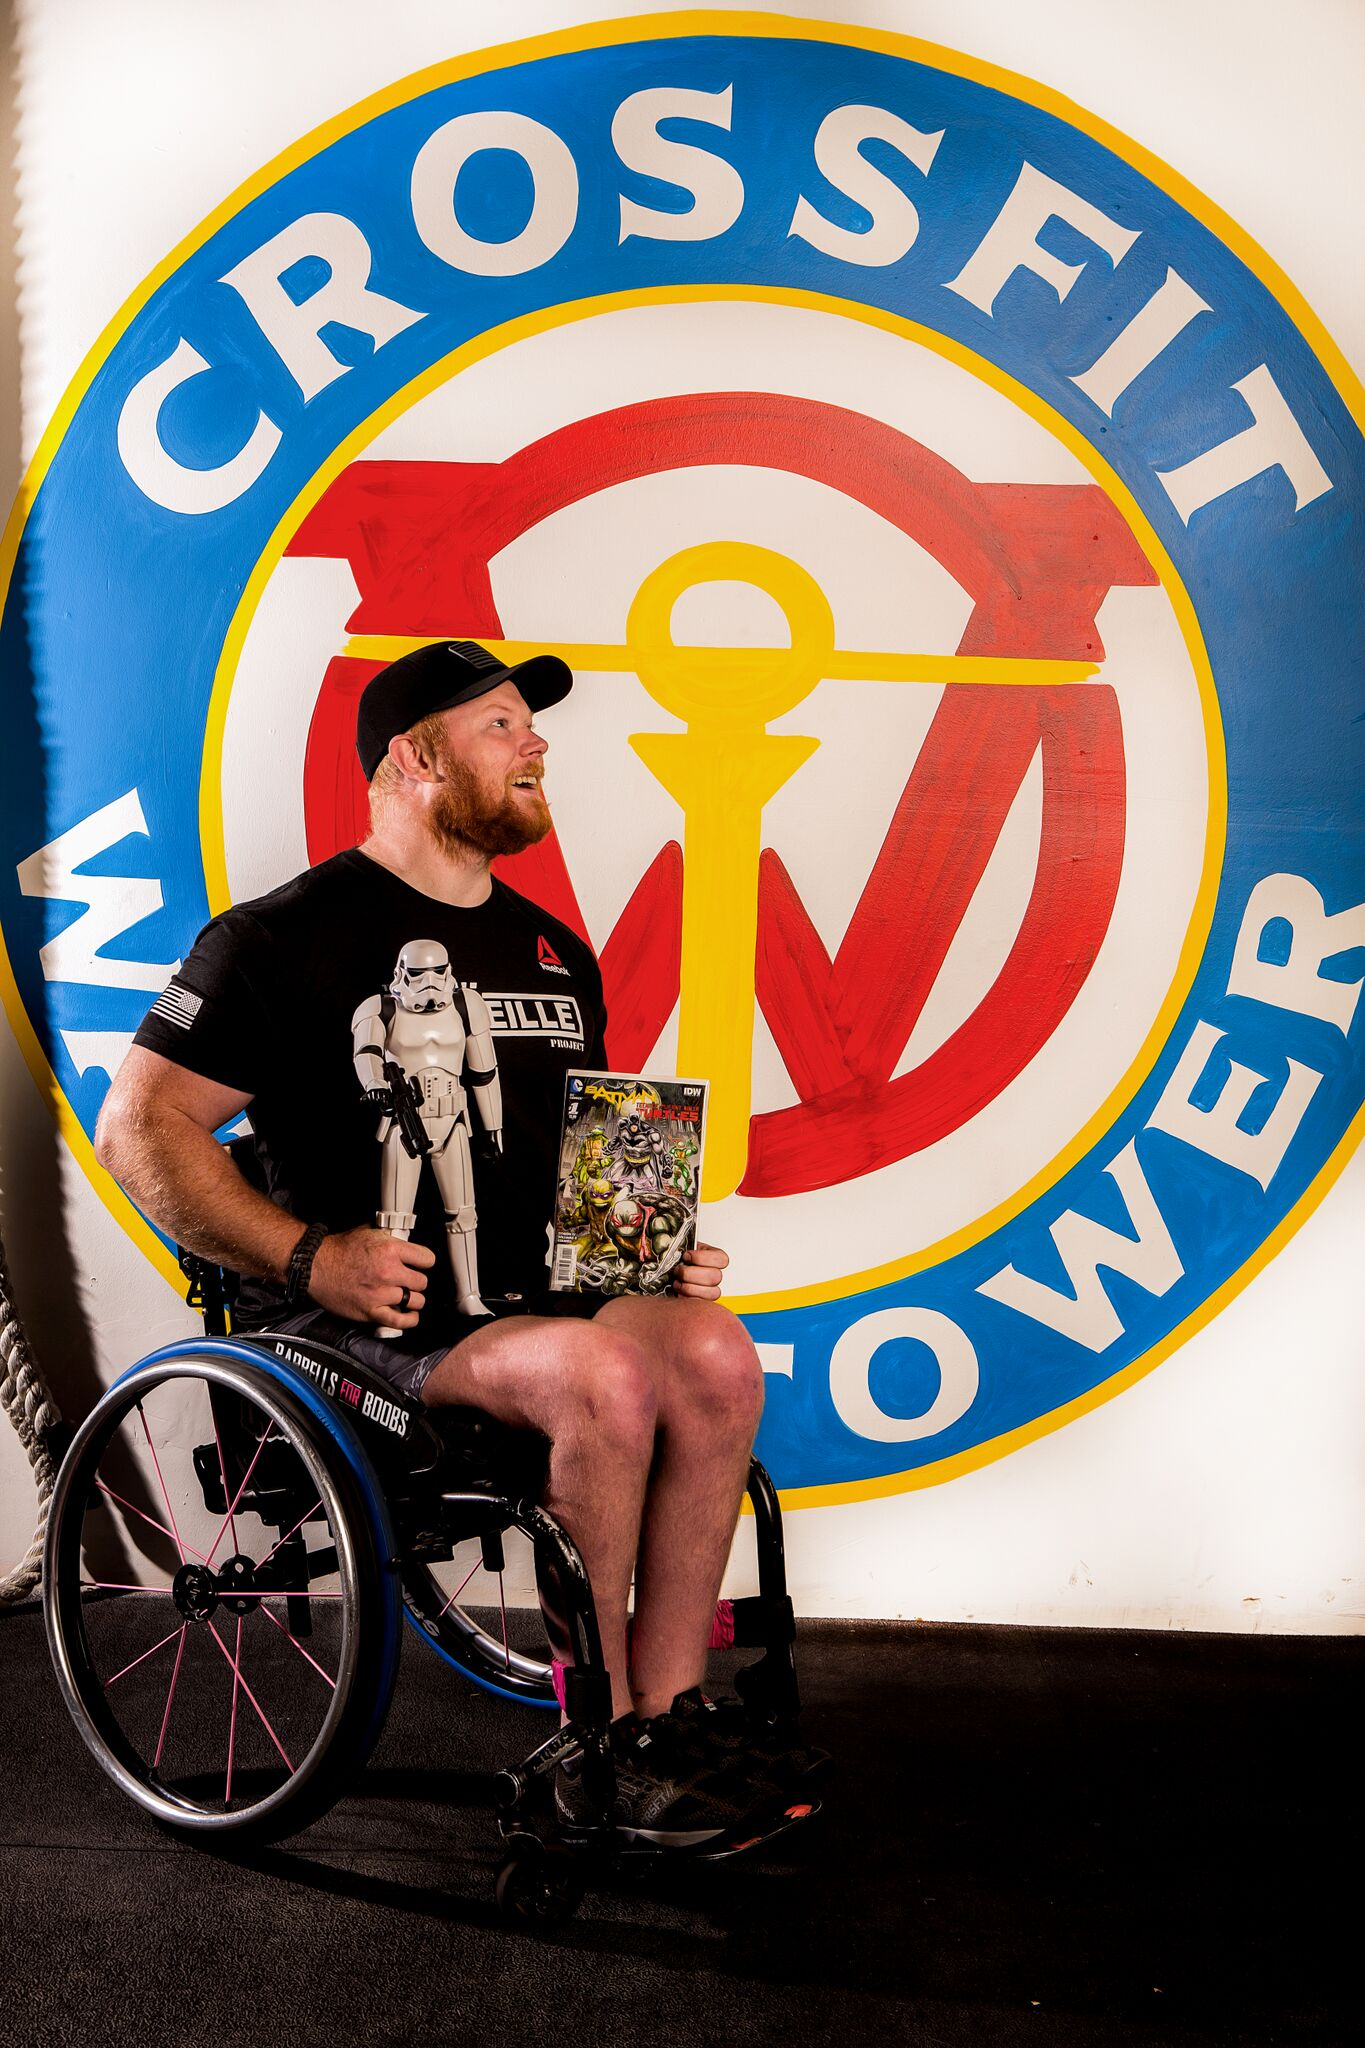 Kevin Ogar, Owner of CrossFit Watchtower, coaches CrossFit in Denver